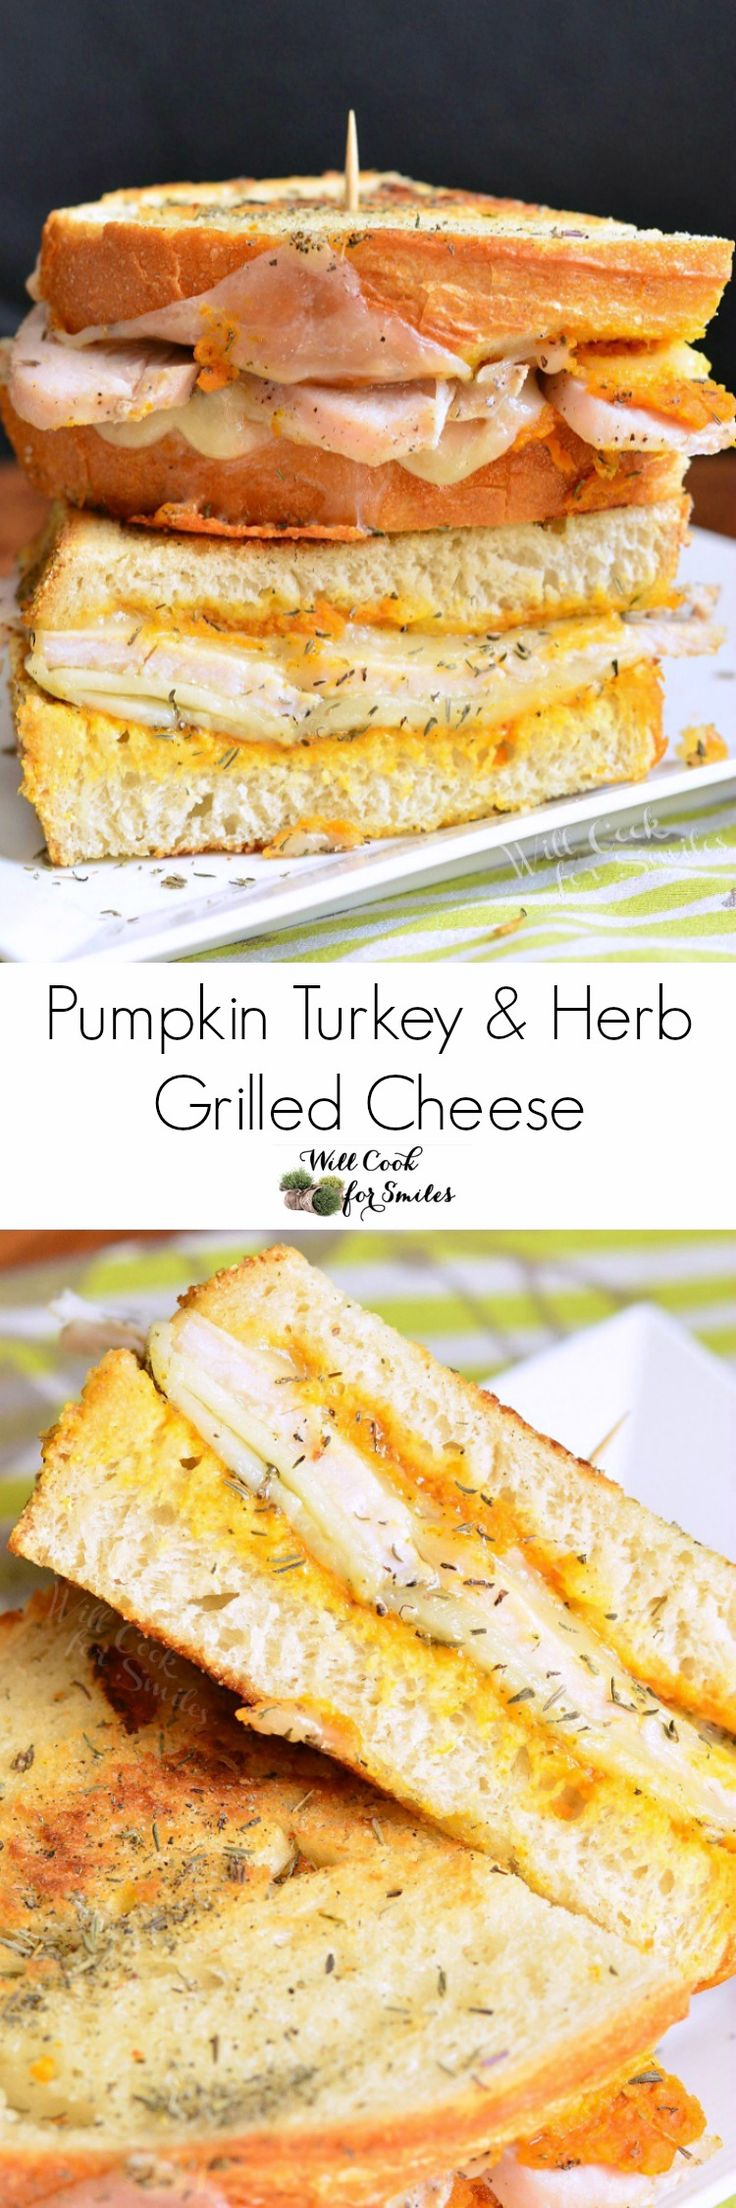 Pumpkin Turkey Grilled Cheese. Tasty turkey grilled cheese made with pumpkin puree, sharp white cheddar cheese, and dried herbs.